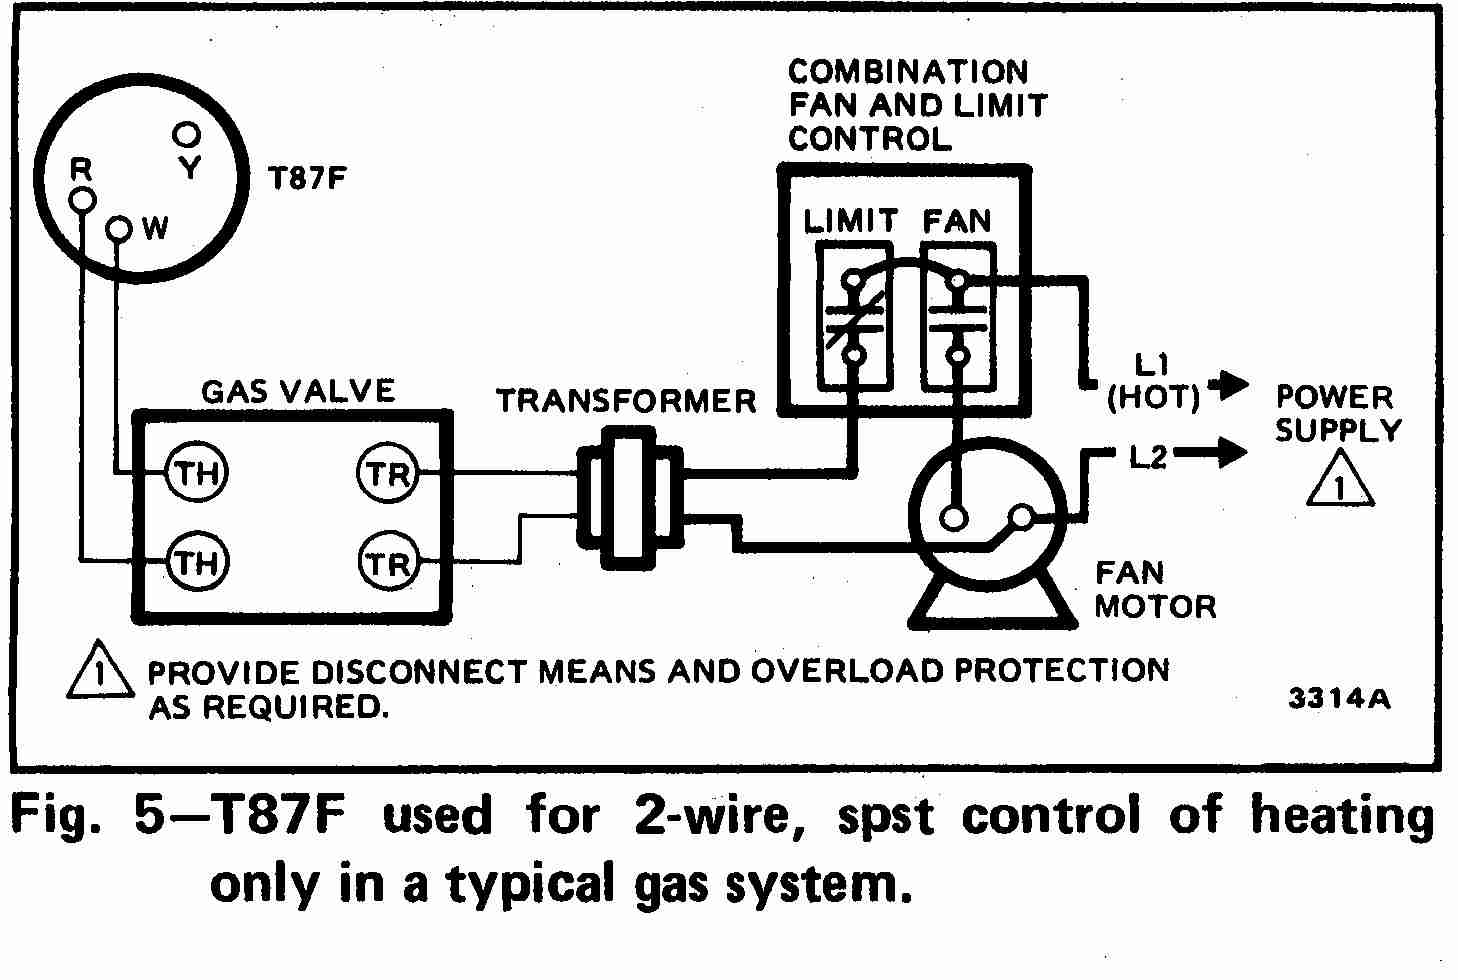 TT_T87F_0002_2Wg_DJF room thermostat wiring diagrams for hvac systems gas heater wiring diagram at crackthecode.co